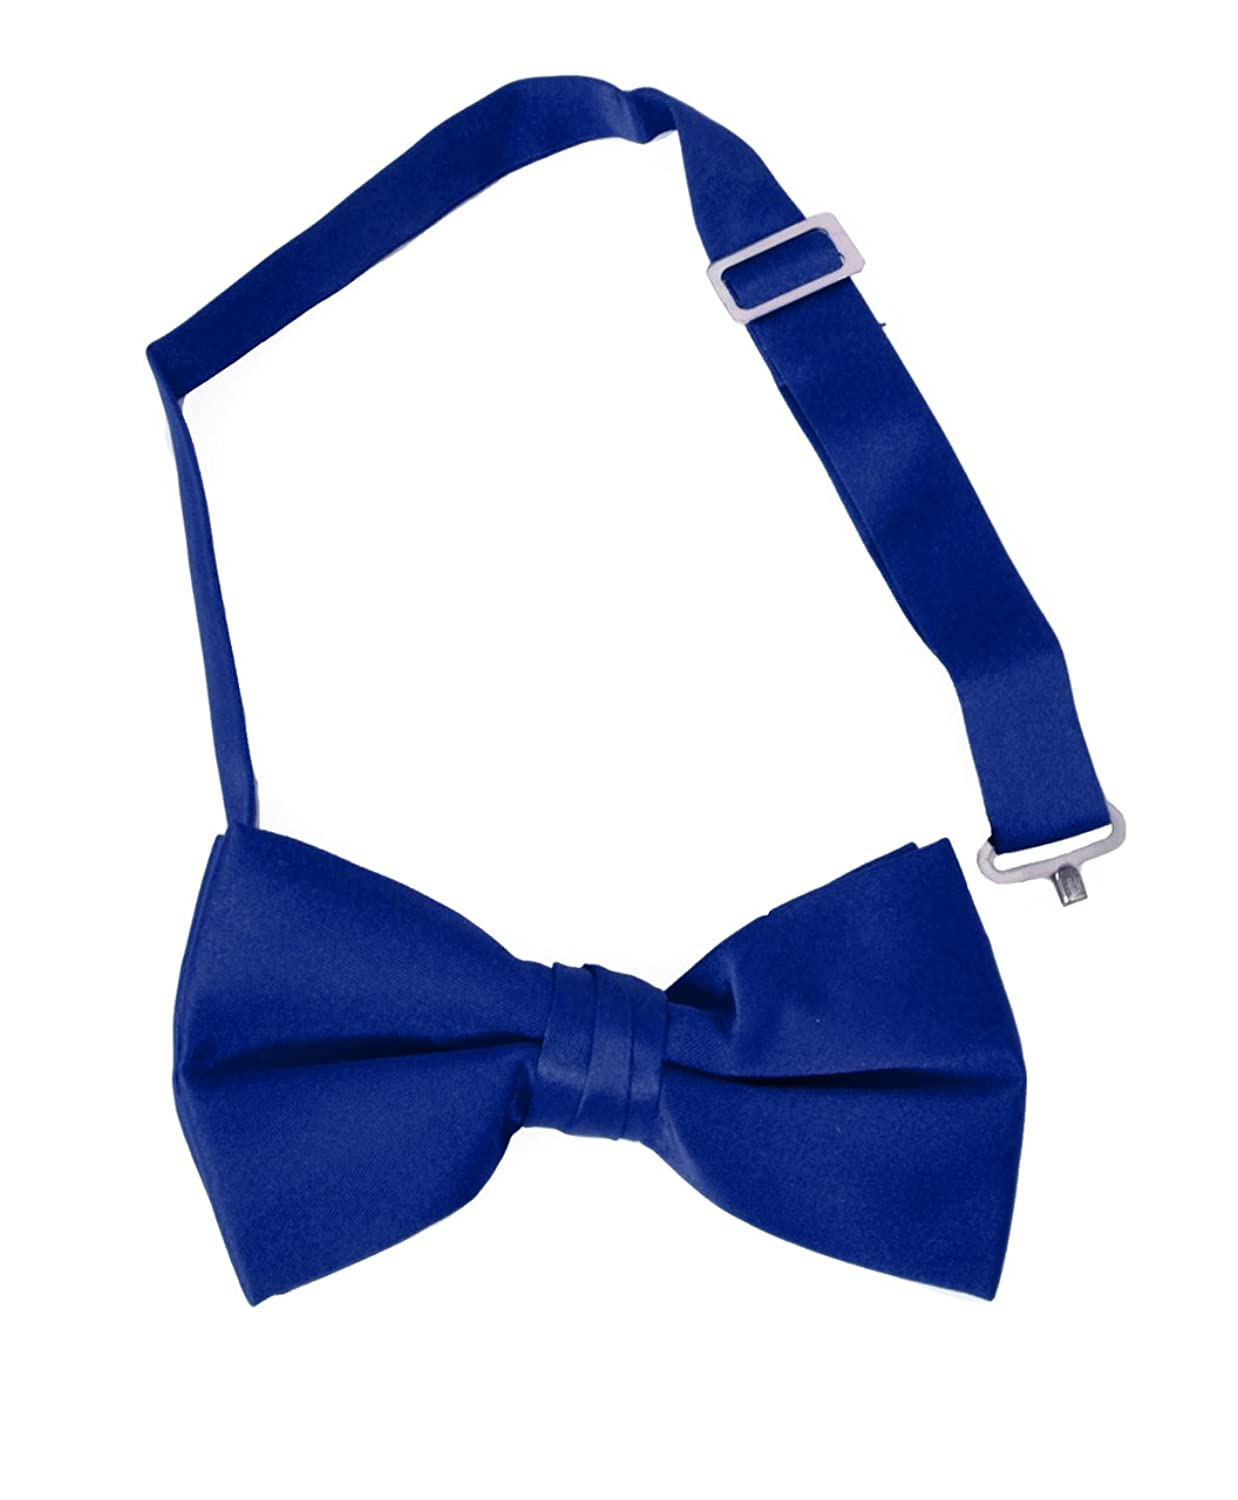 discount Formal Solid Banded Pre-Tied Boys Bow Ties-Royal Blue free shipping